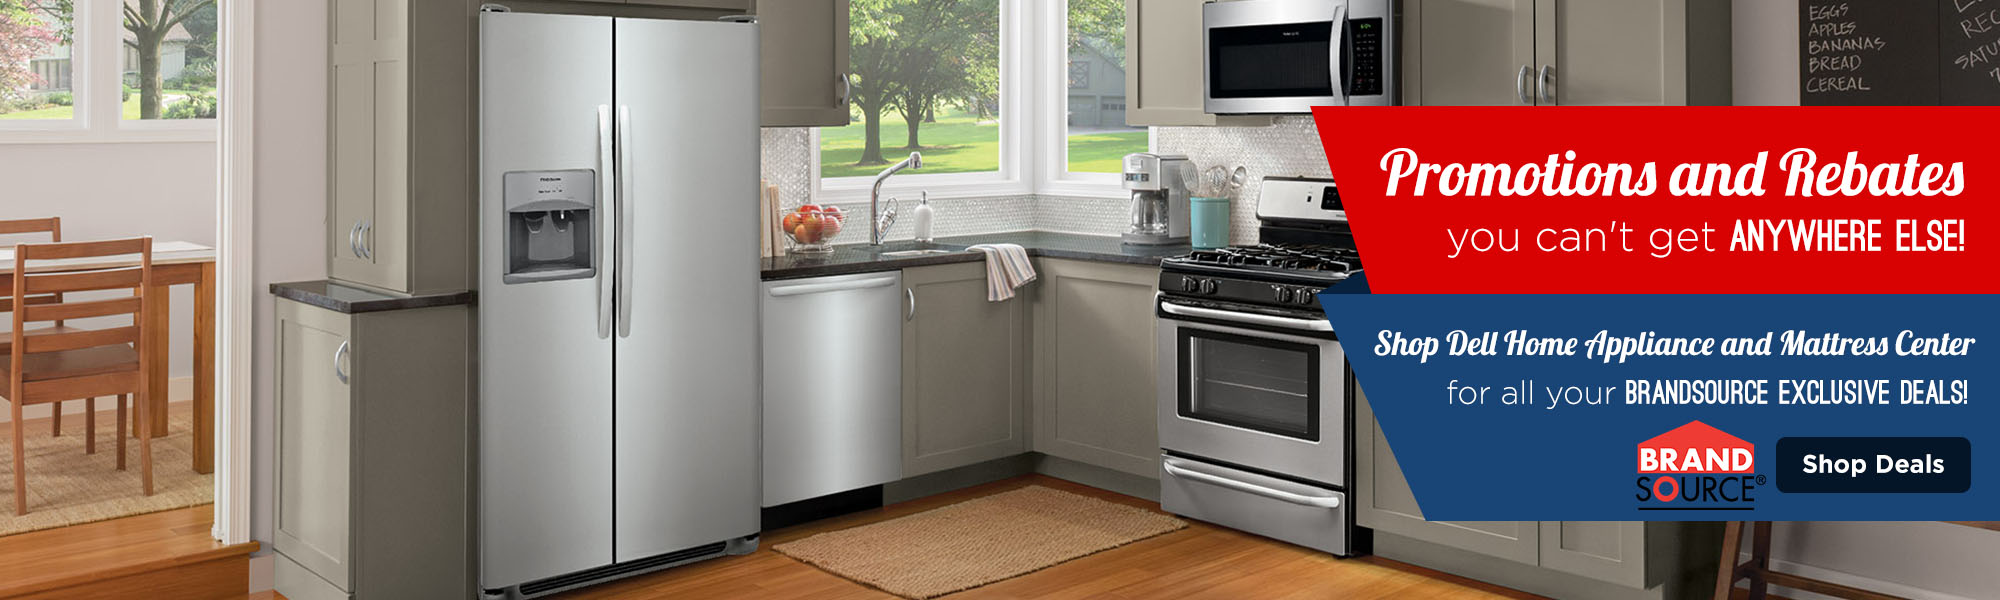 nopinchesmames sale package houston presidents dent appliance lowes kitchen refrigerators day appliances club scratch deals and